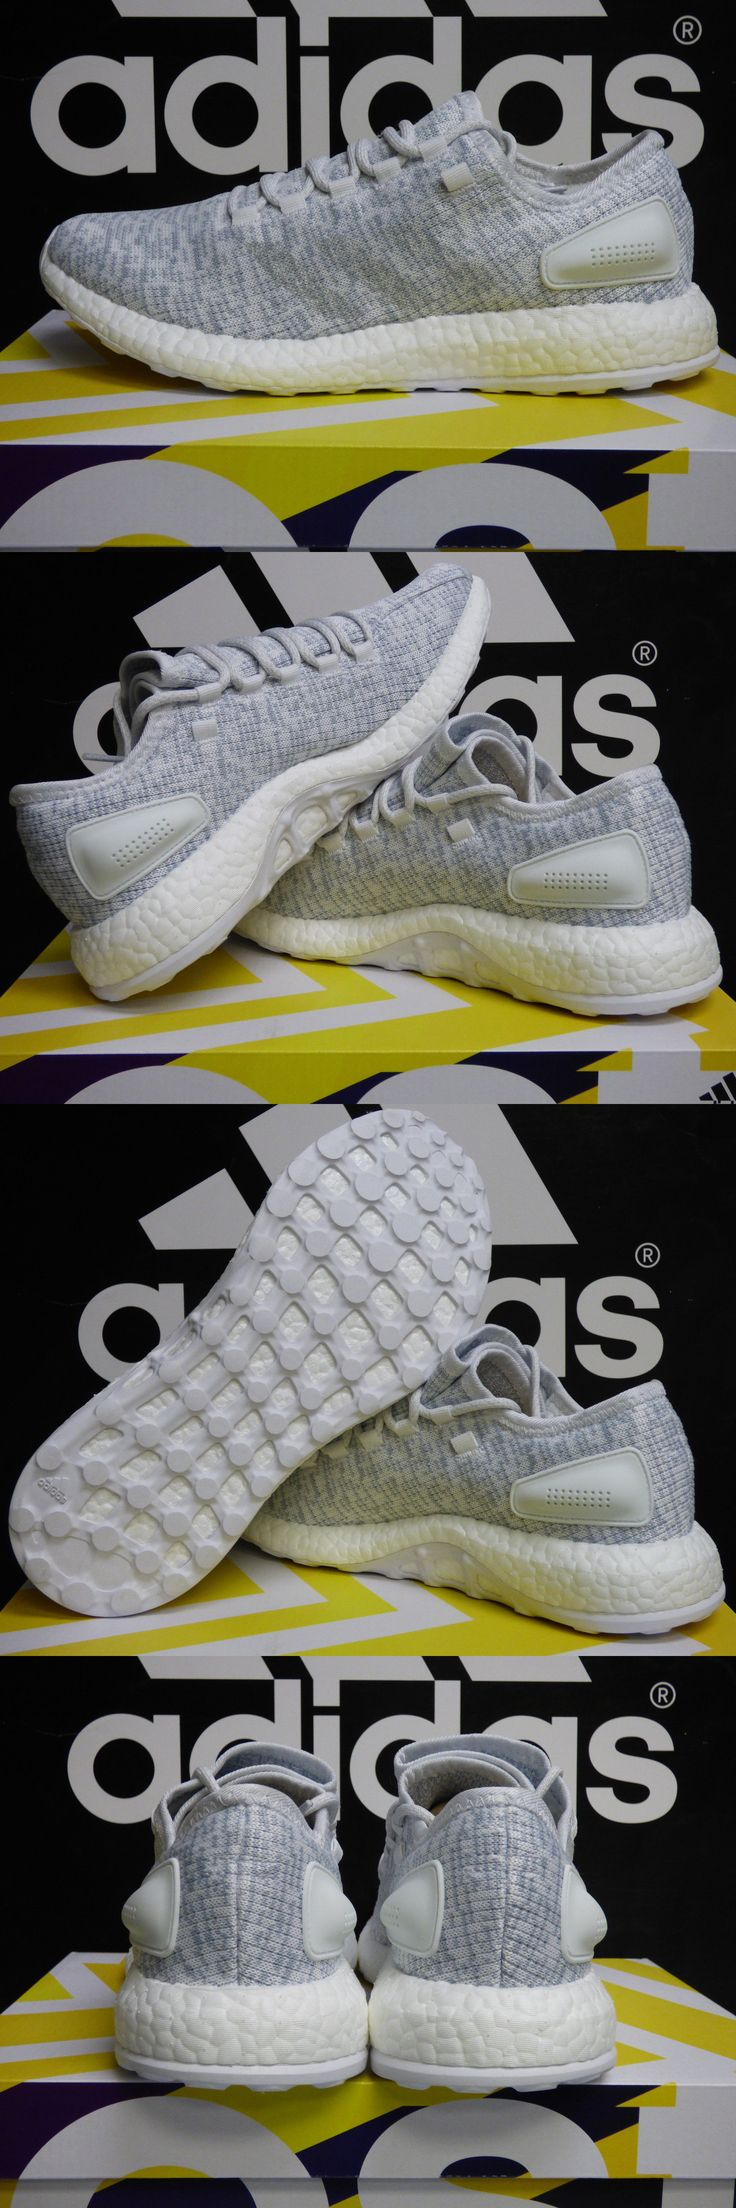 Men 158952: New Authentic Adidas Pure Boost Men S Running Shoes - White Grey: Ba8893 -> BUY IT NOW ONLY: $104.77 on eBay!